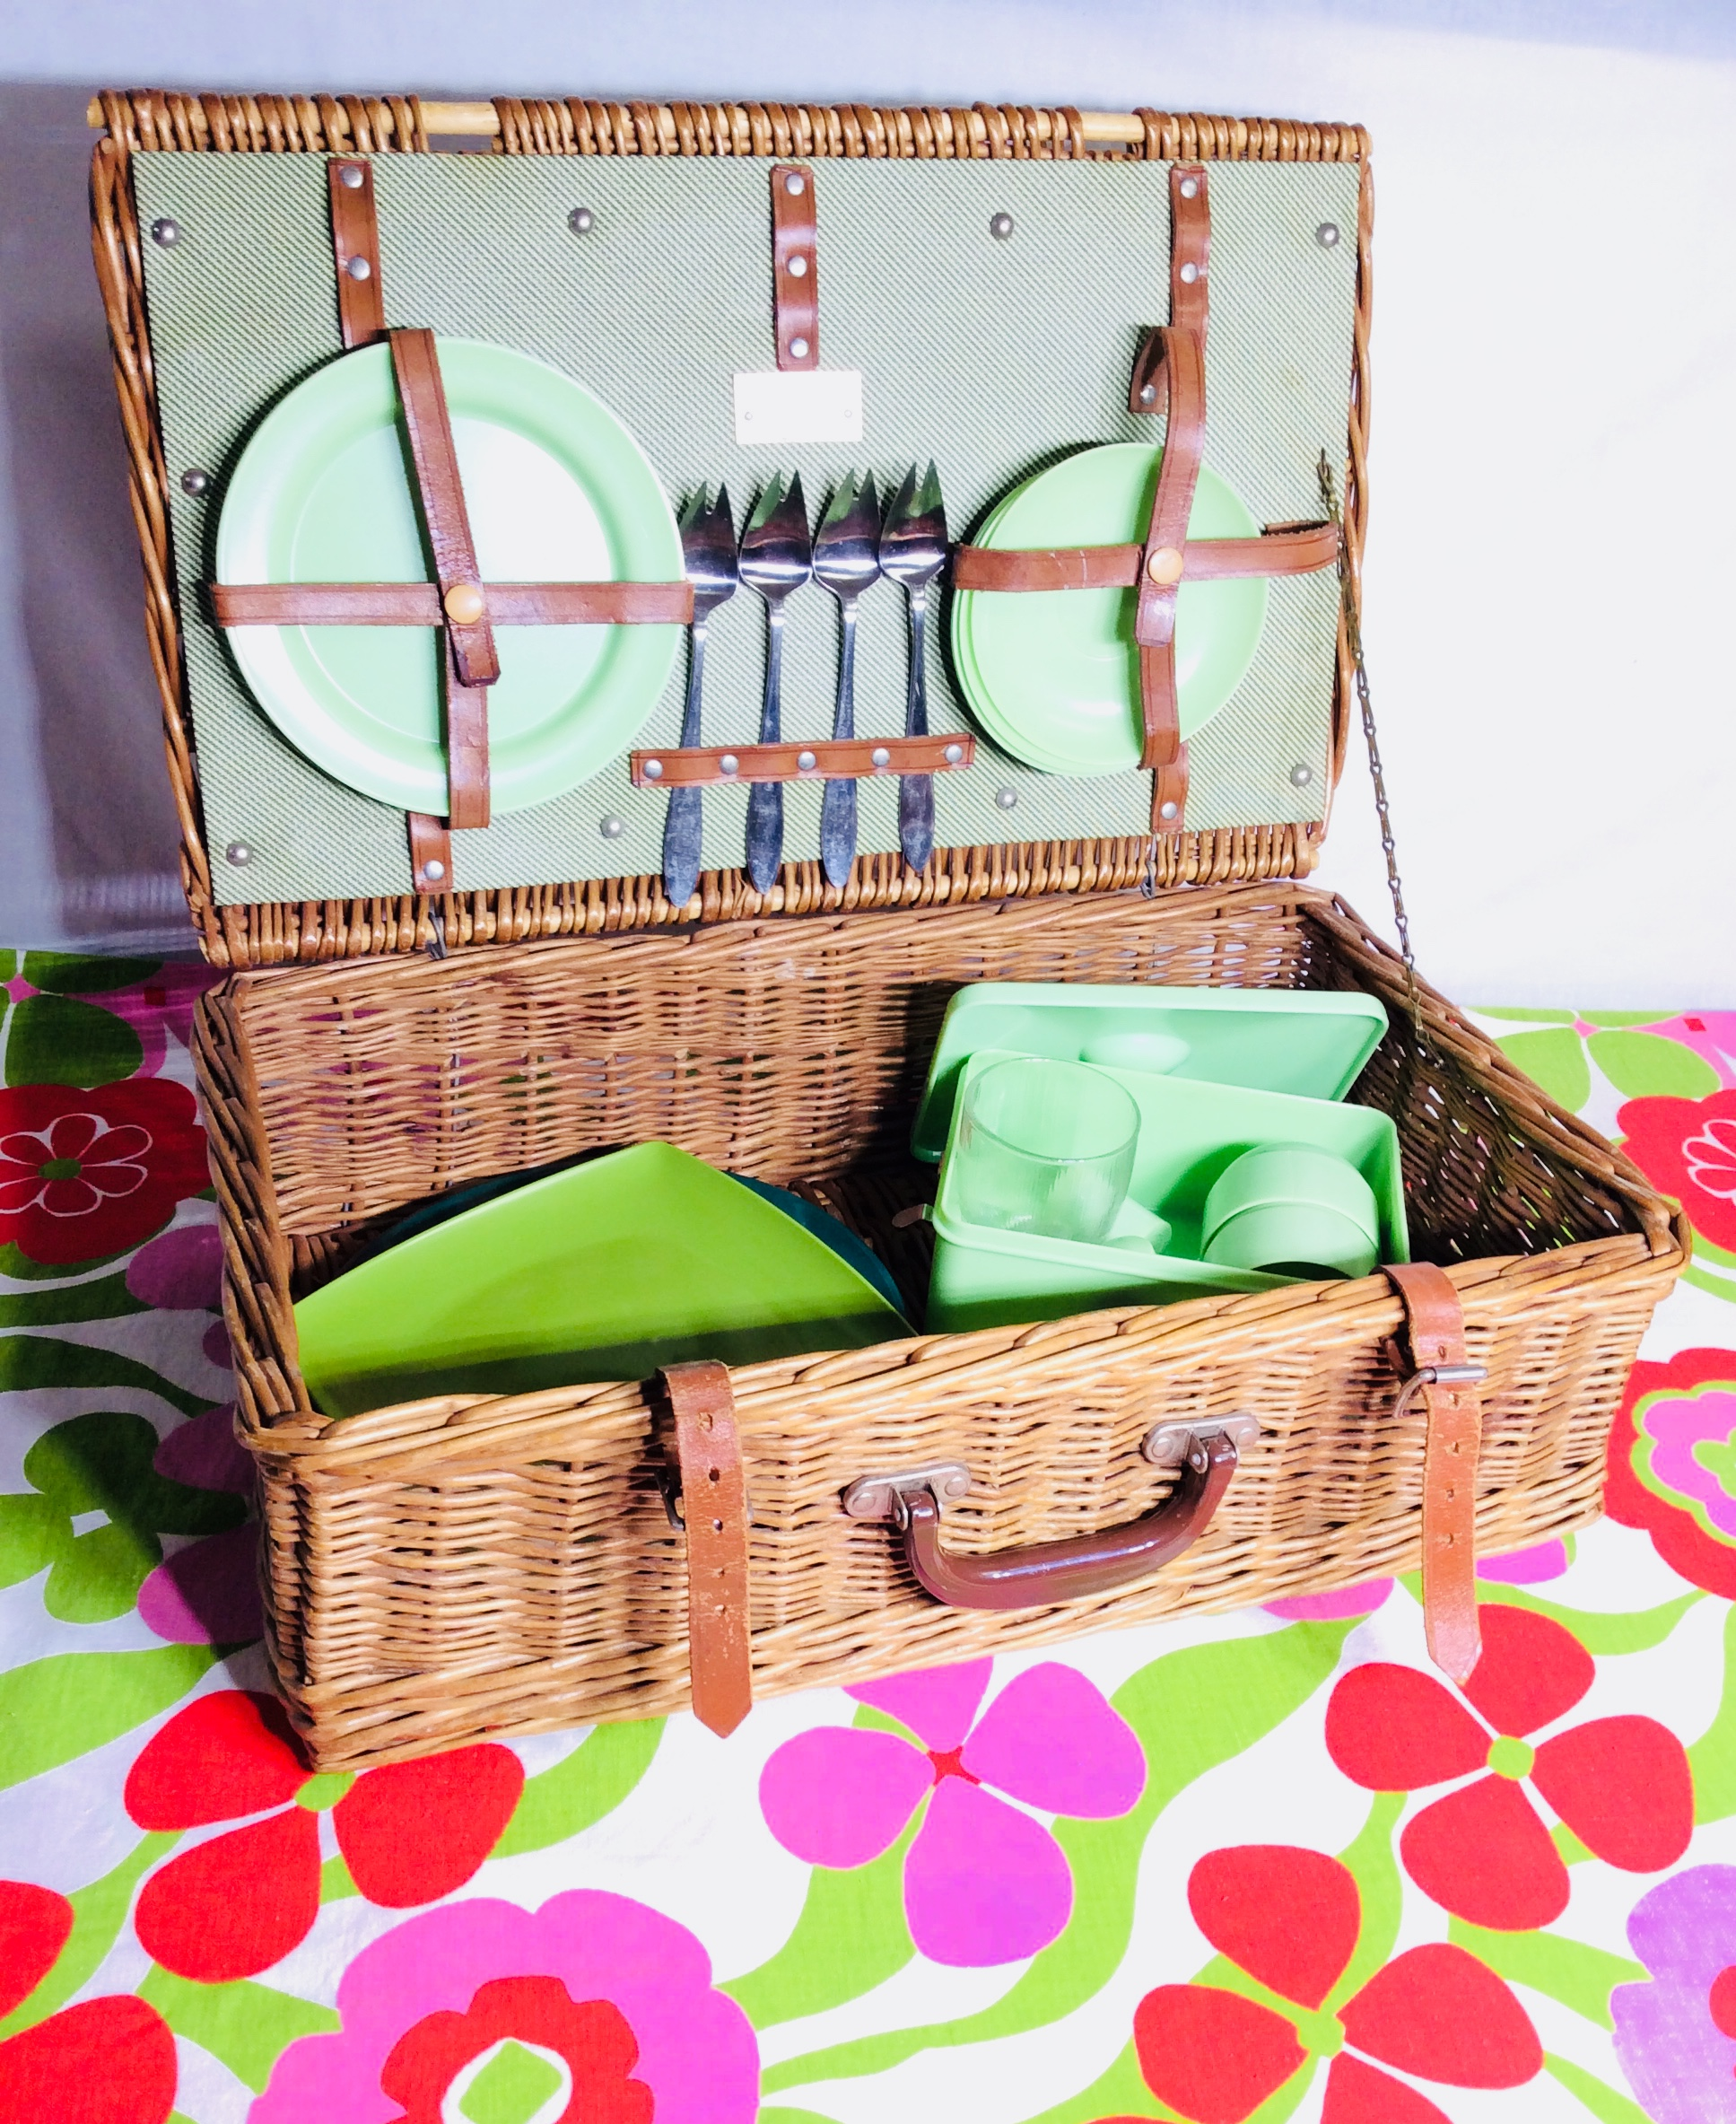 Picnic basket with green tableware